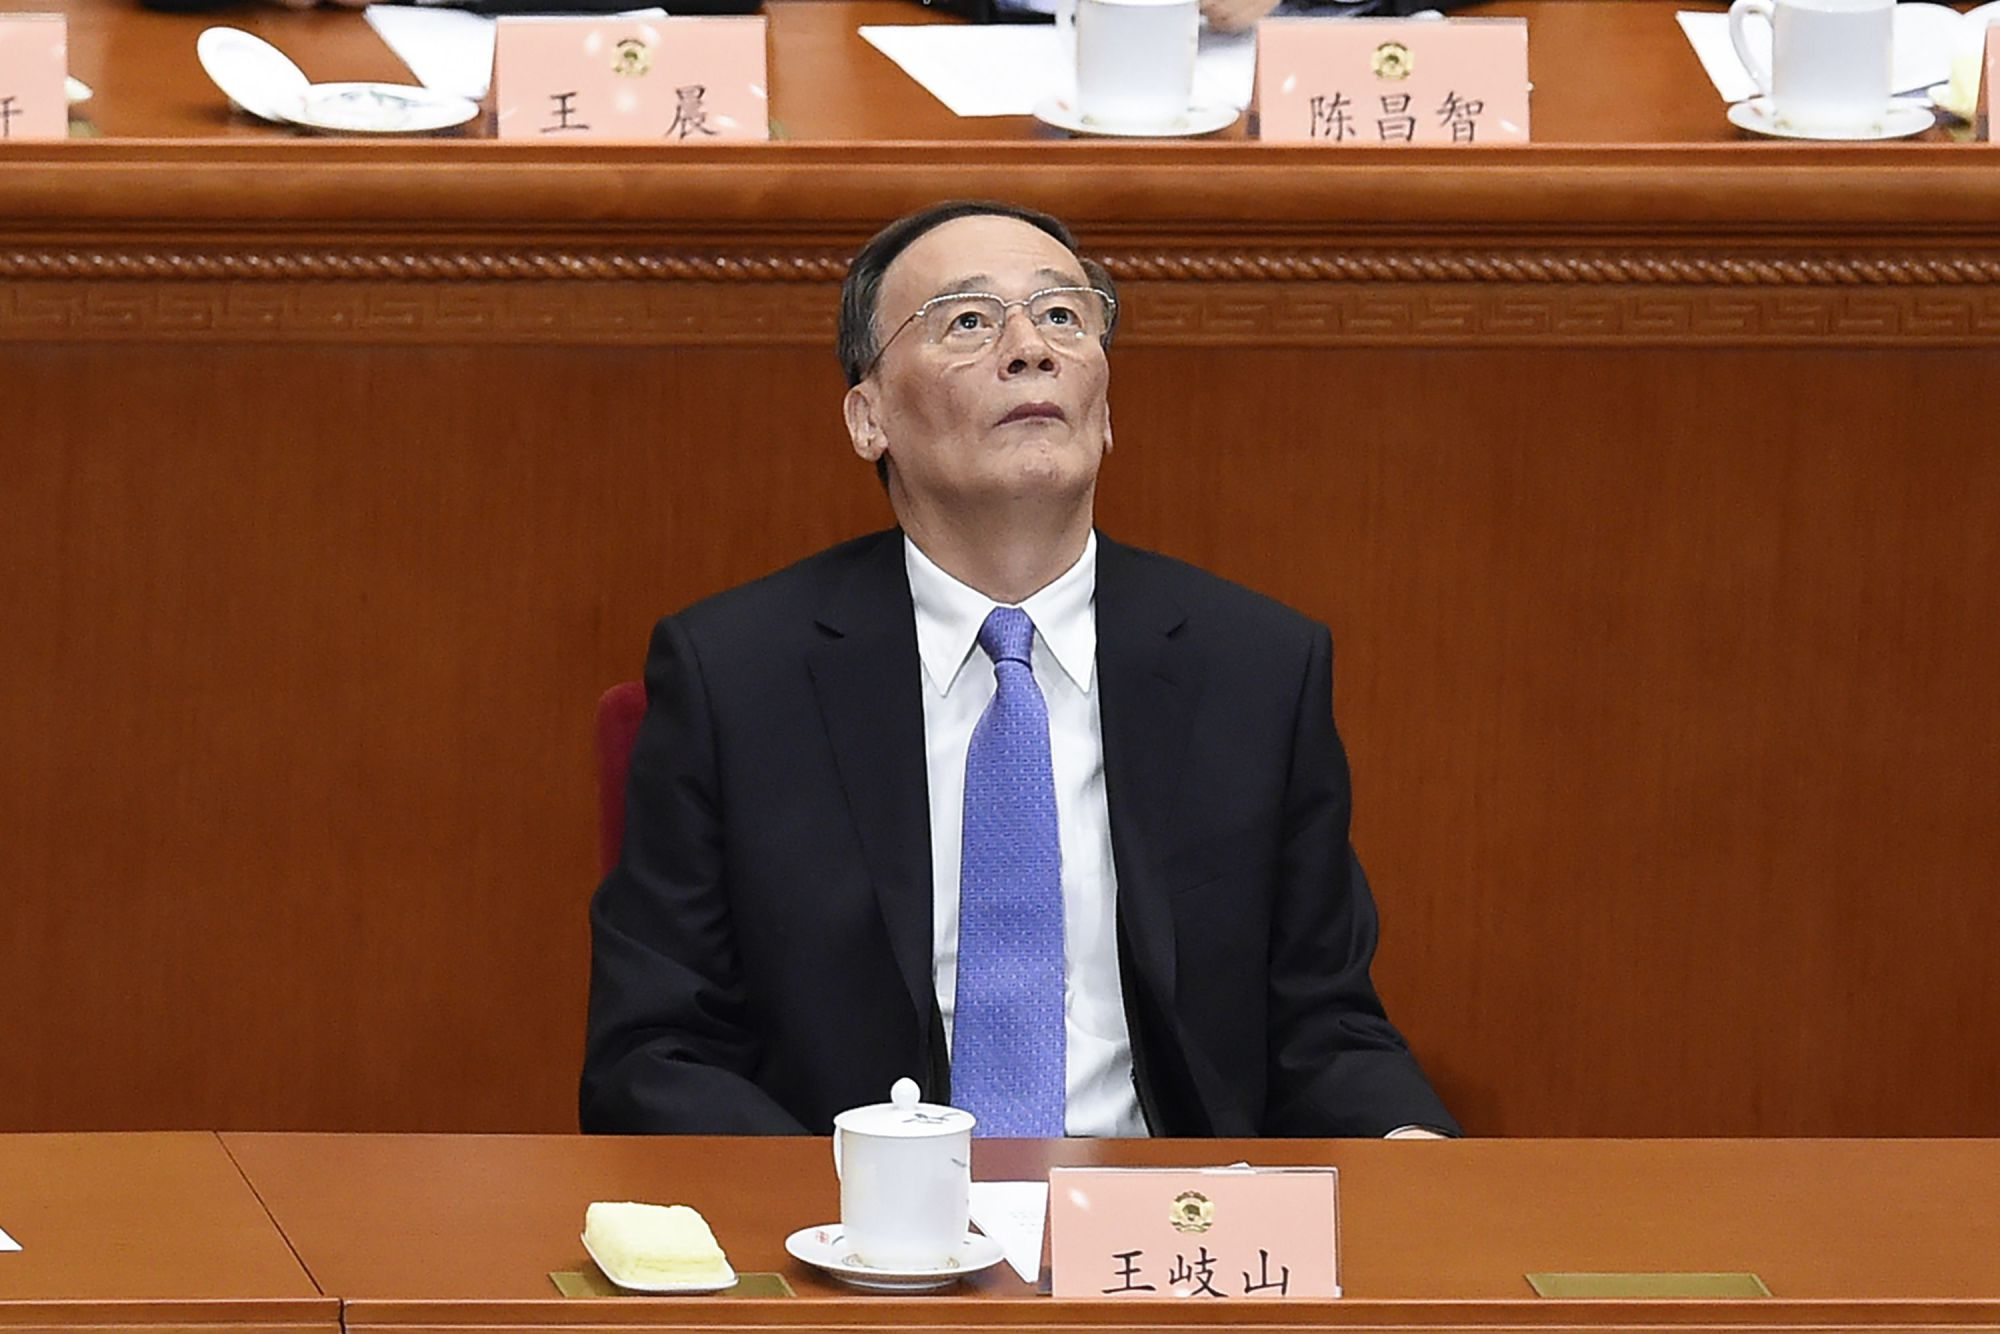 Wang Qishan, a member of the Standing Committee of the Political Bureau of the Communist Party of China Central Committee and secretary of the CPC Central Commission for Discipline Inspection, attends the opening session of the Chinese People's Political Consultative Conference at the Great Hall of the People in Beijing on Friday.   AFP-JIJI